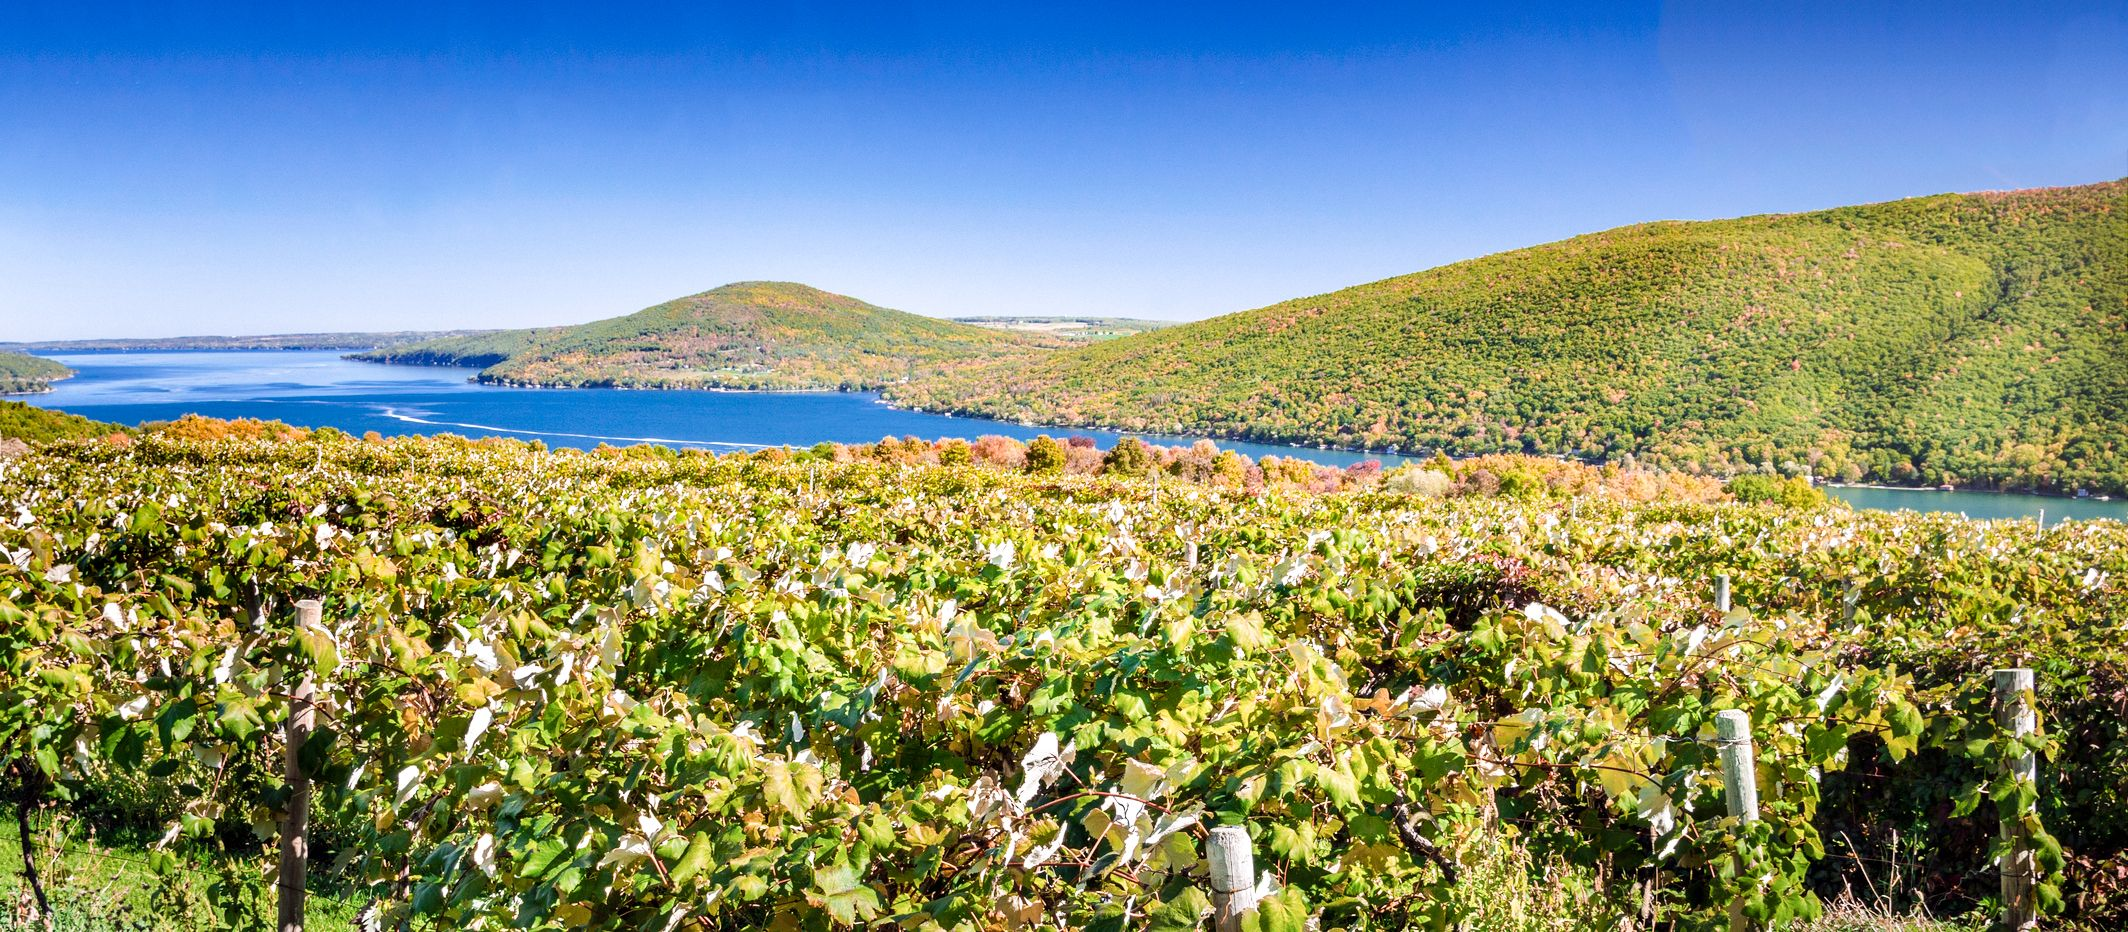 Vineyard with a Lake in Background on a Clear Early Autumn Day. Fingers Lakes, Upstate New York.